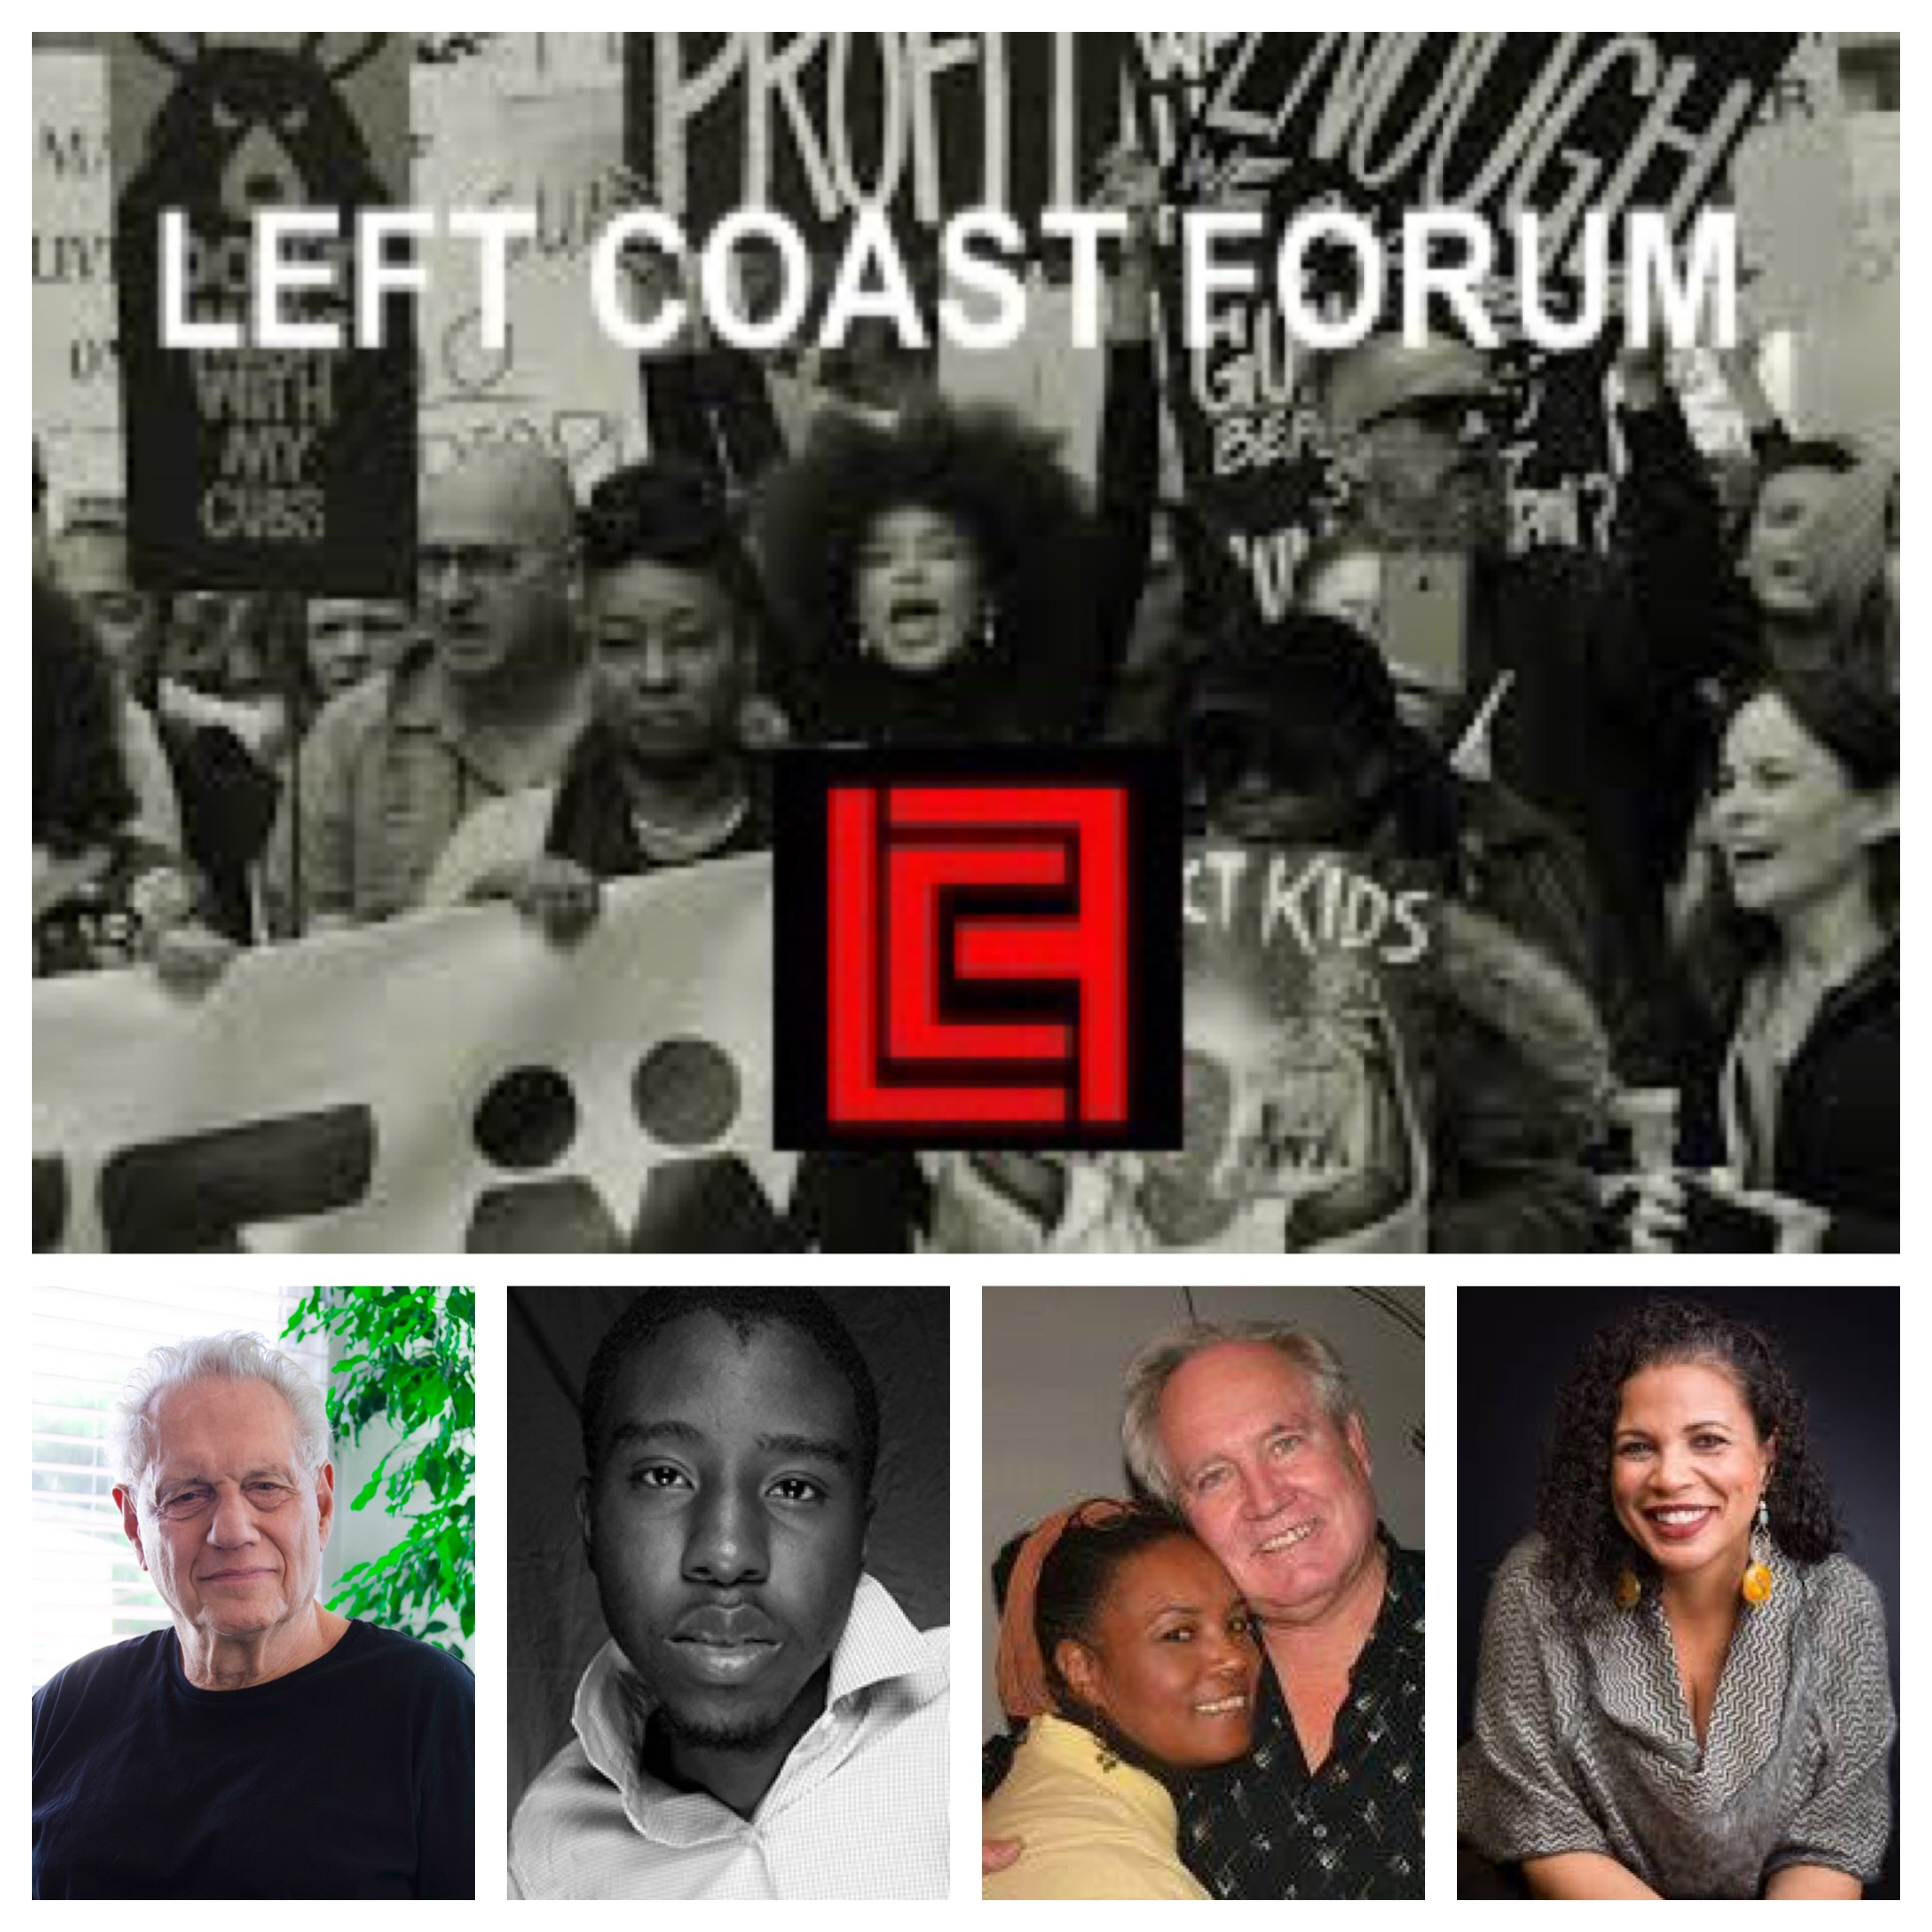 Voices Radio – Eric and Channing talks with the lead organizers of the Left Coast Forum, Dick Price and Sharon Kyle, along with Chair of the Pan African American Studies department at Cal State LA, and BLM-LA organizer, Melina Abdullah.